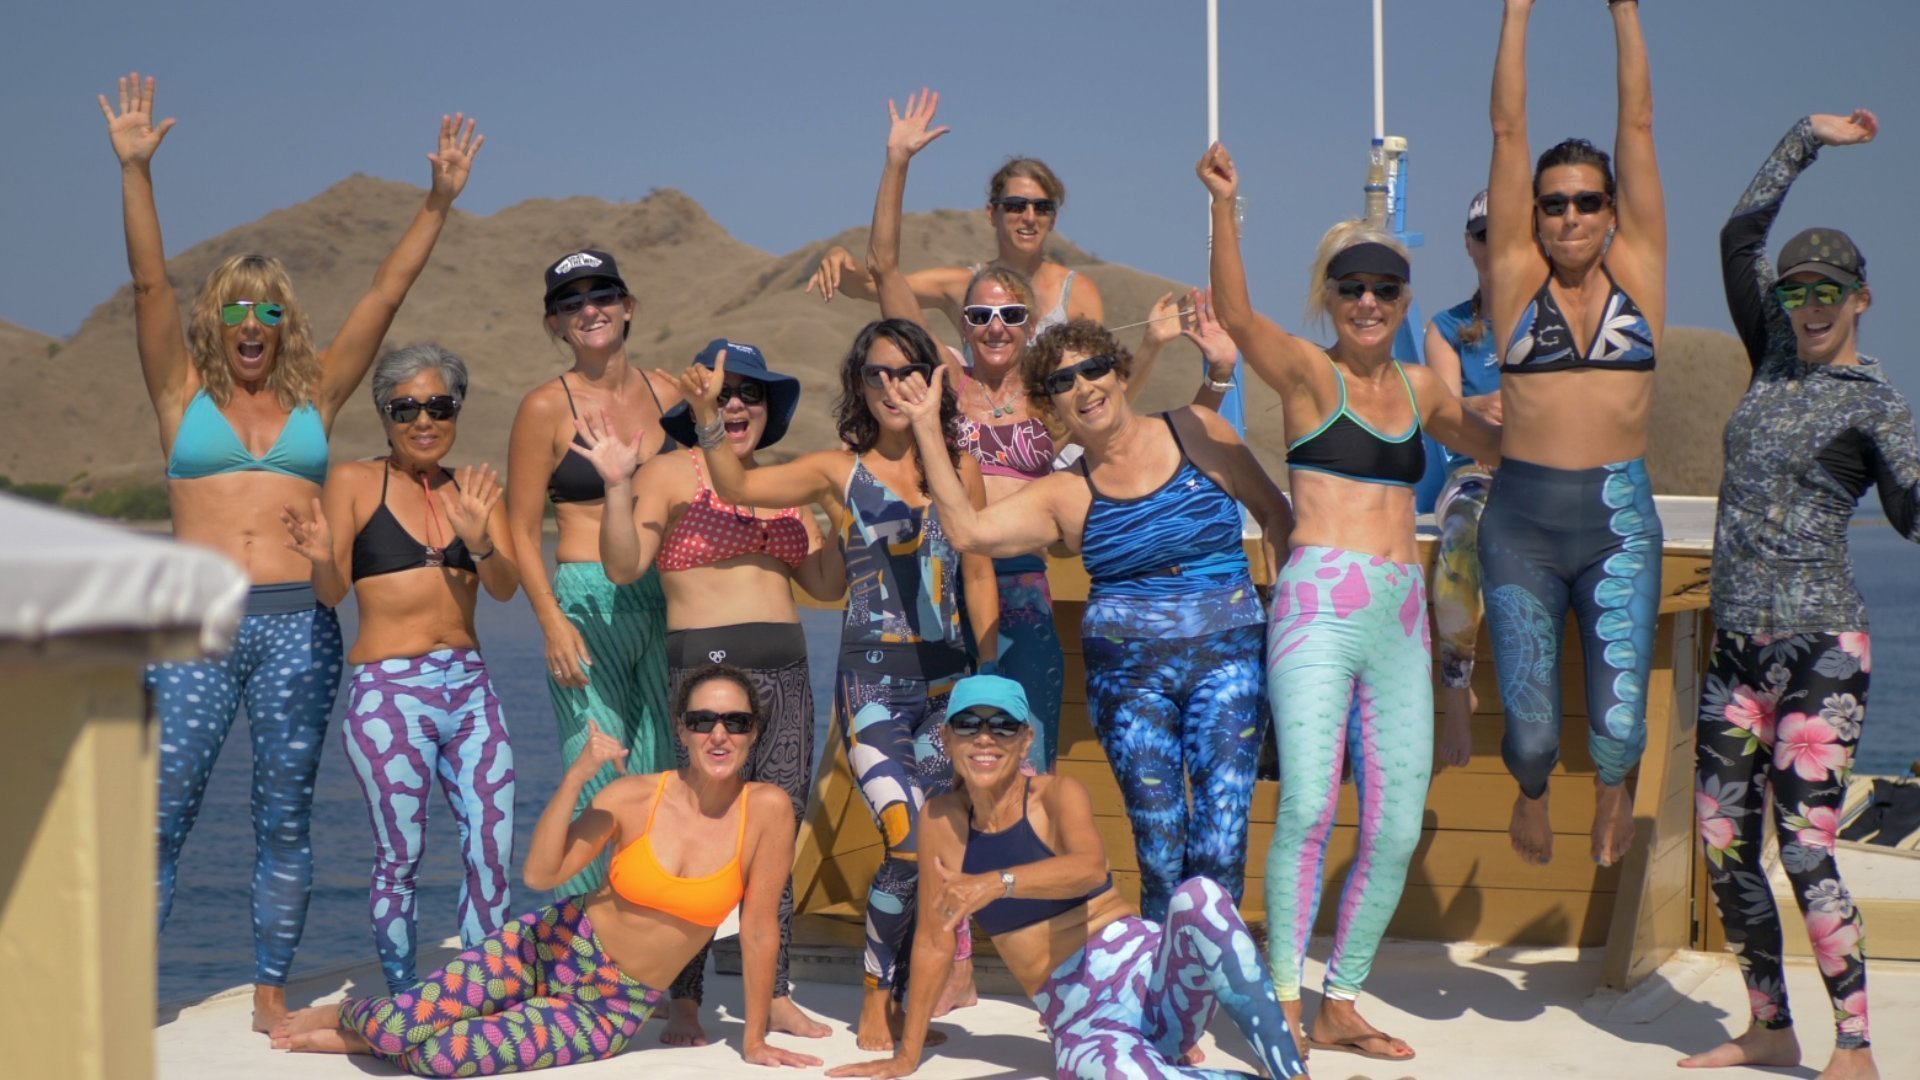 Happy snorkel venture guests